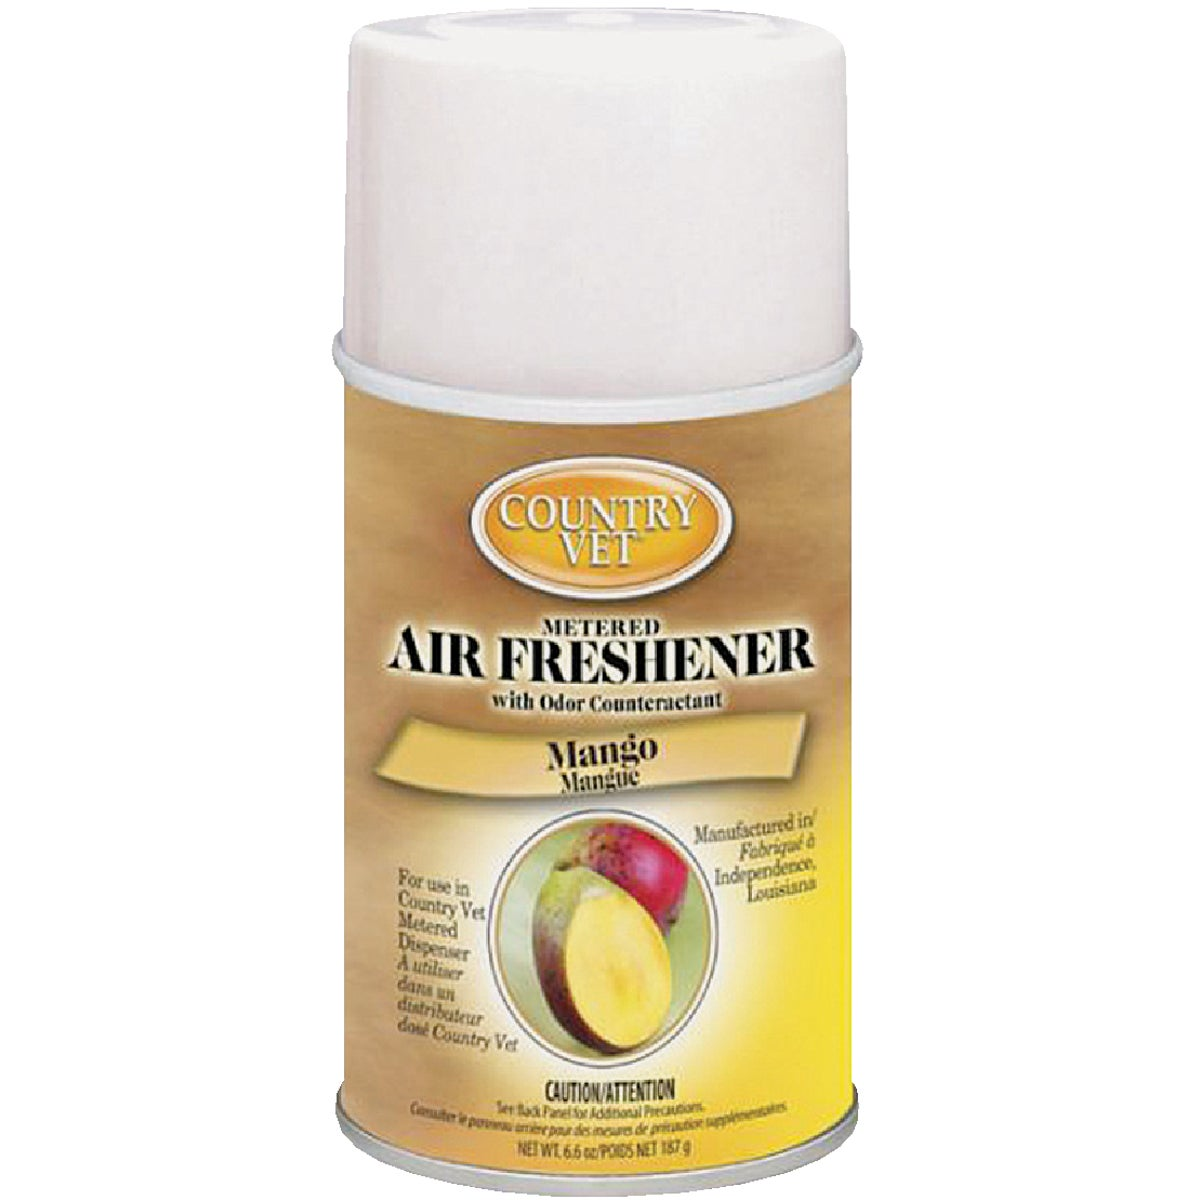 MANGO AIR FRESHENER - 33-2960CVCA by Zep Enforcer Inc